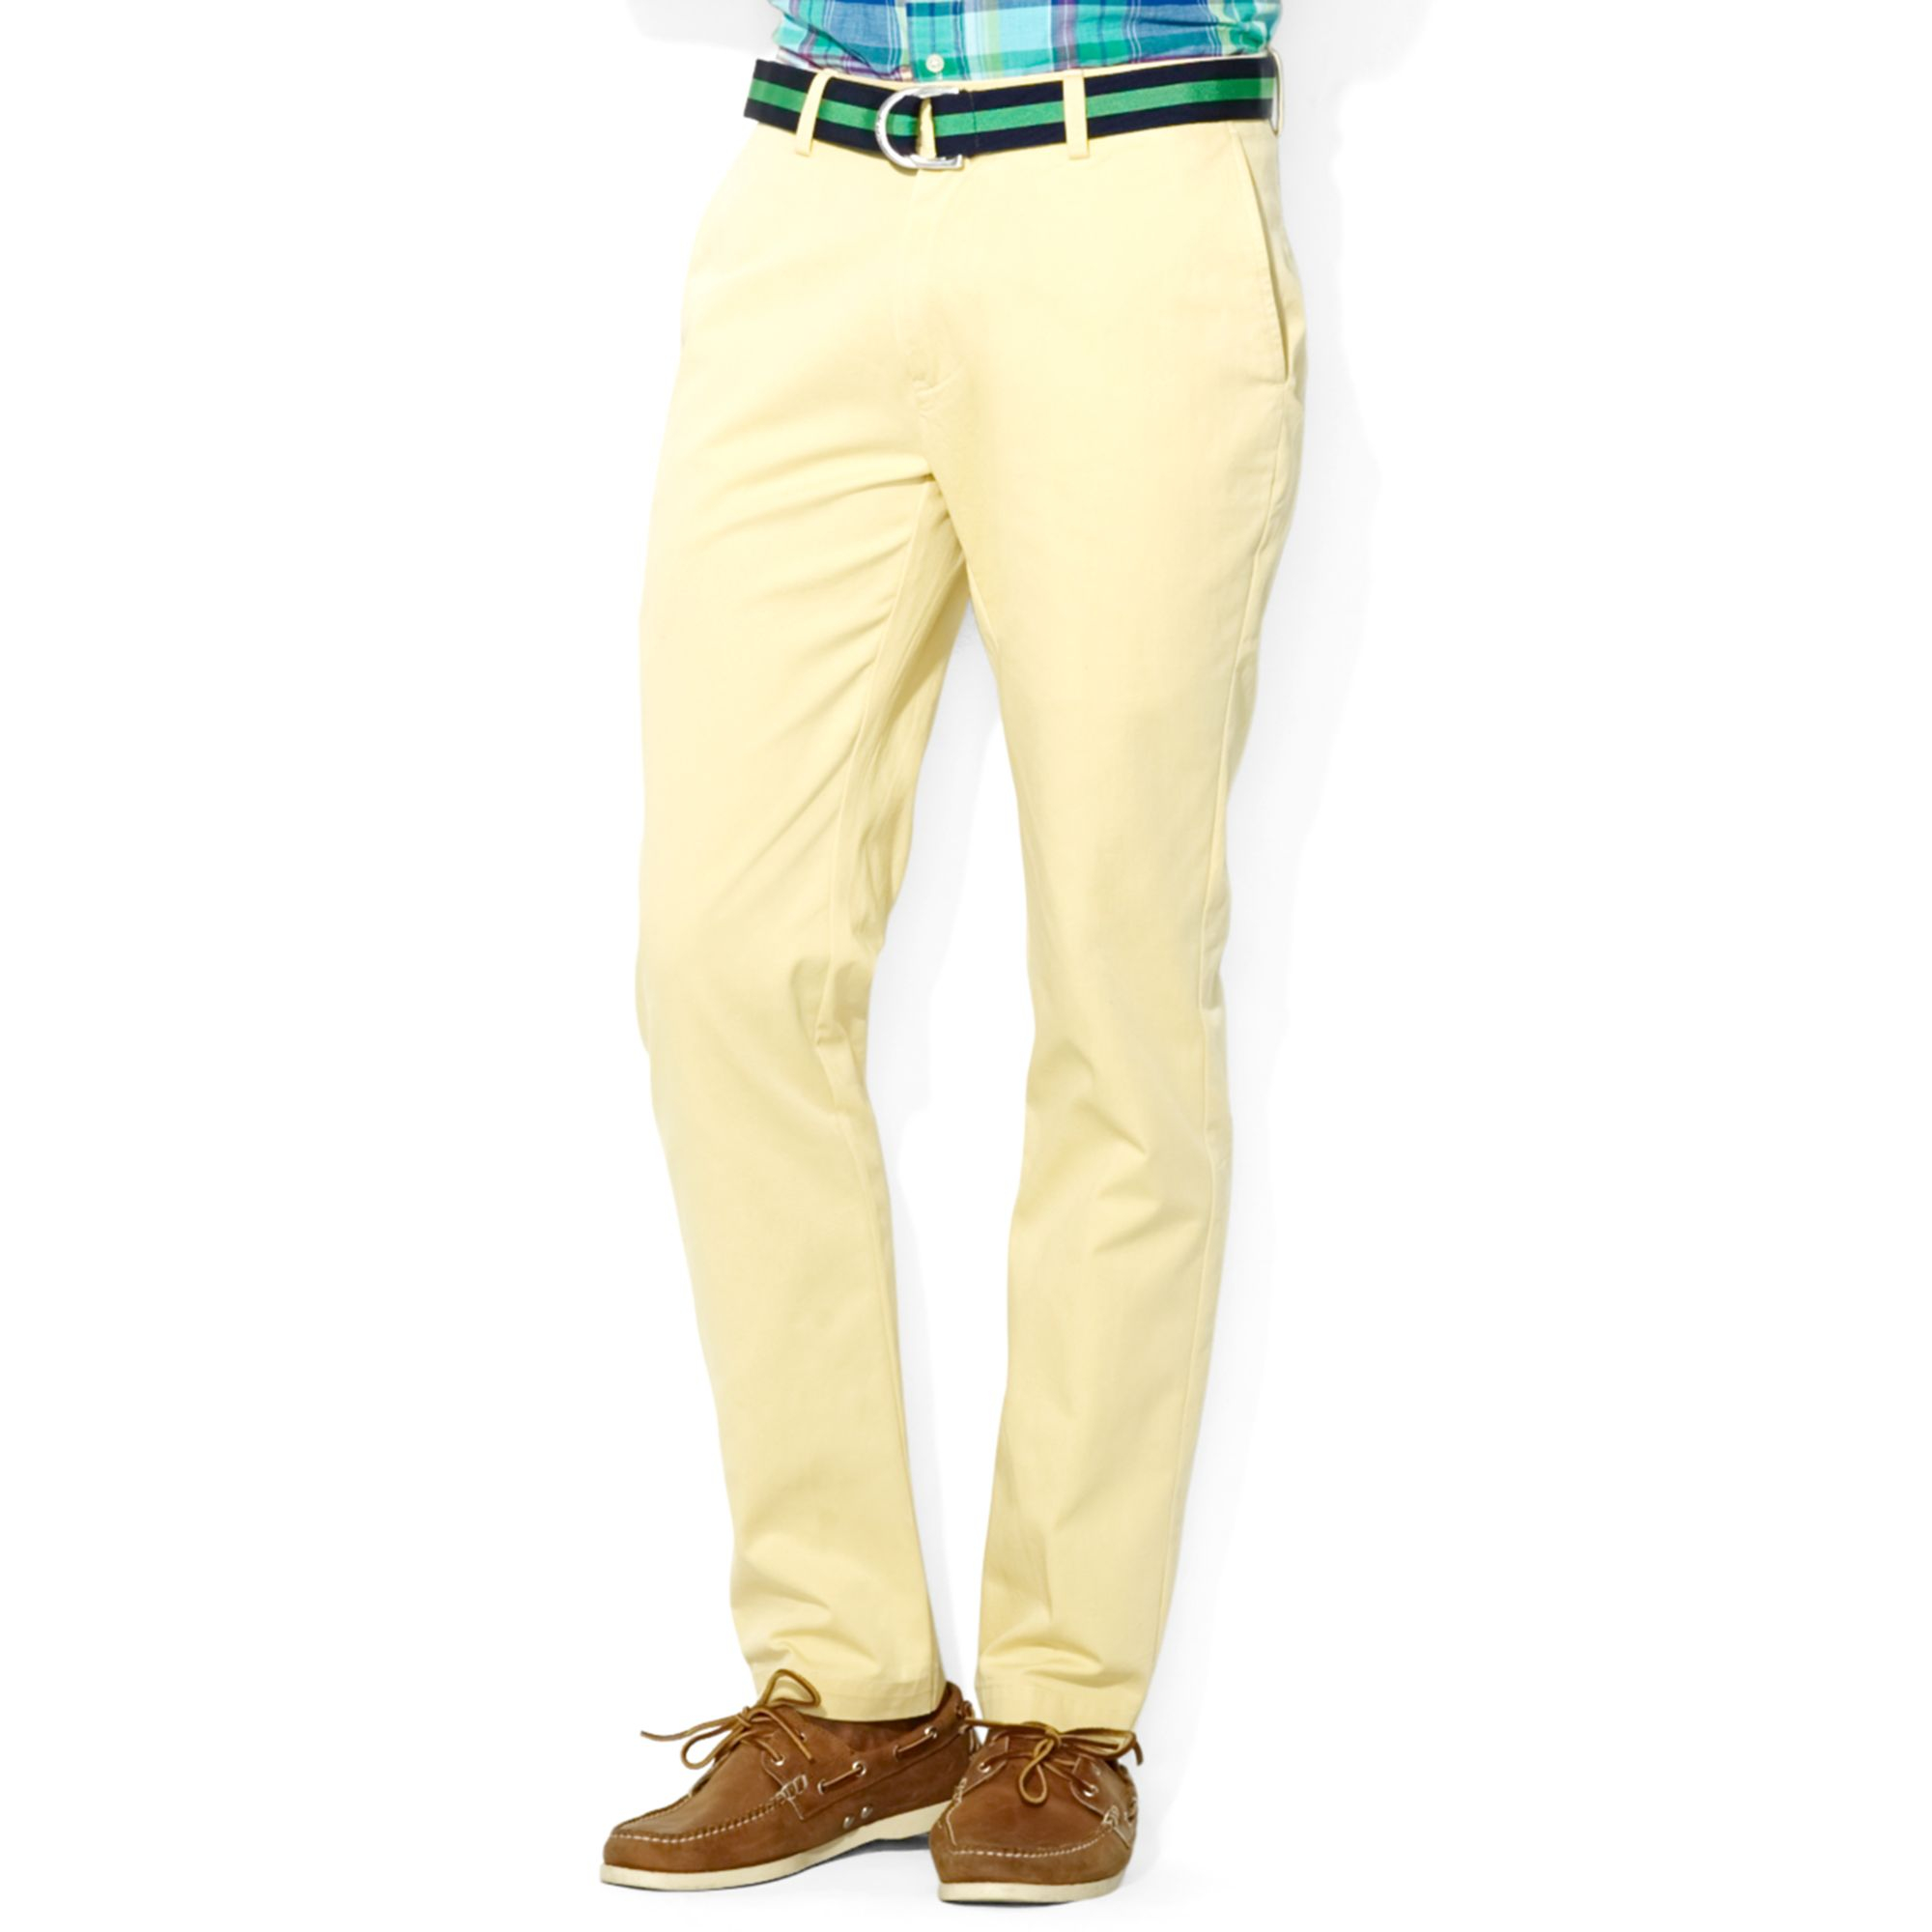 Start saving on mens pants and shirts on sale from Vineyard Vines. Choose from a variety of mens clothes on sale. Free Shipping over $